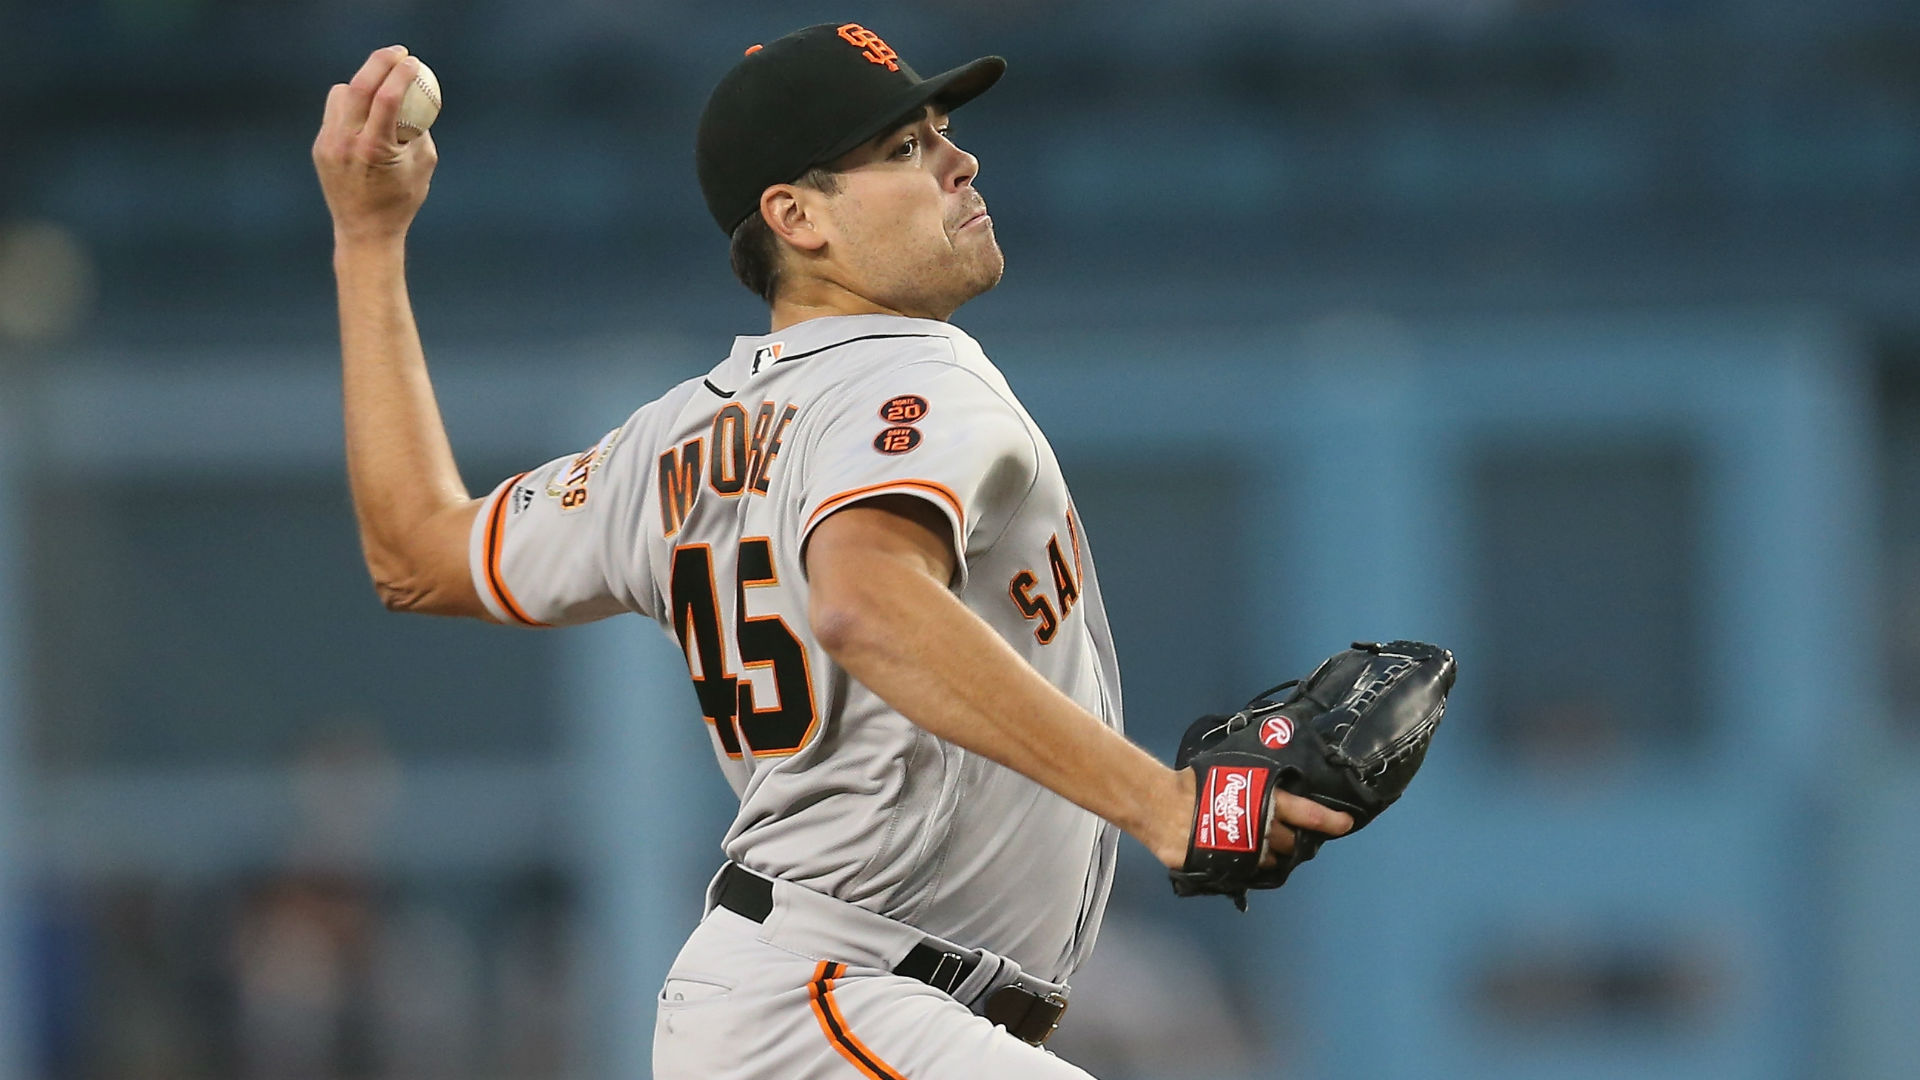 Giants reportedly trade Matt Moore to the Rangers for prospects